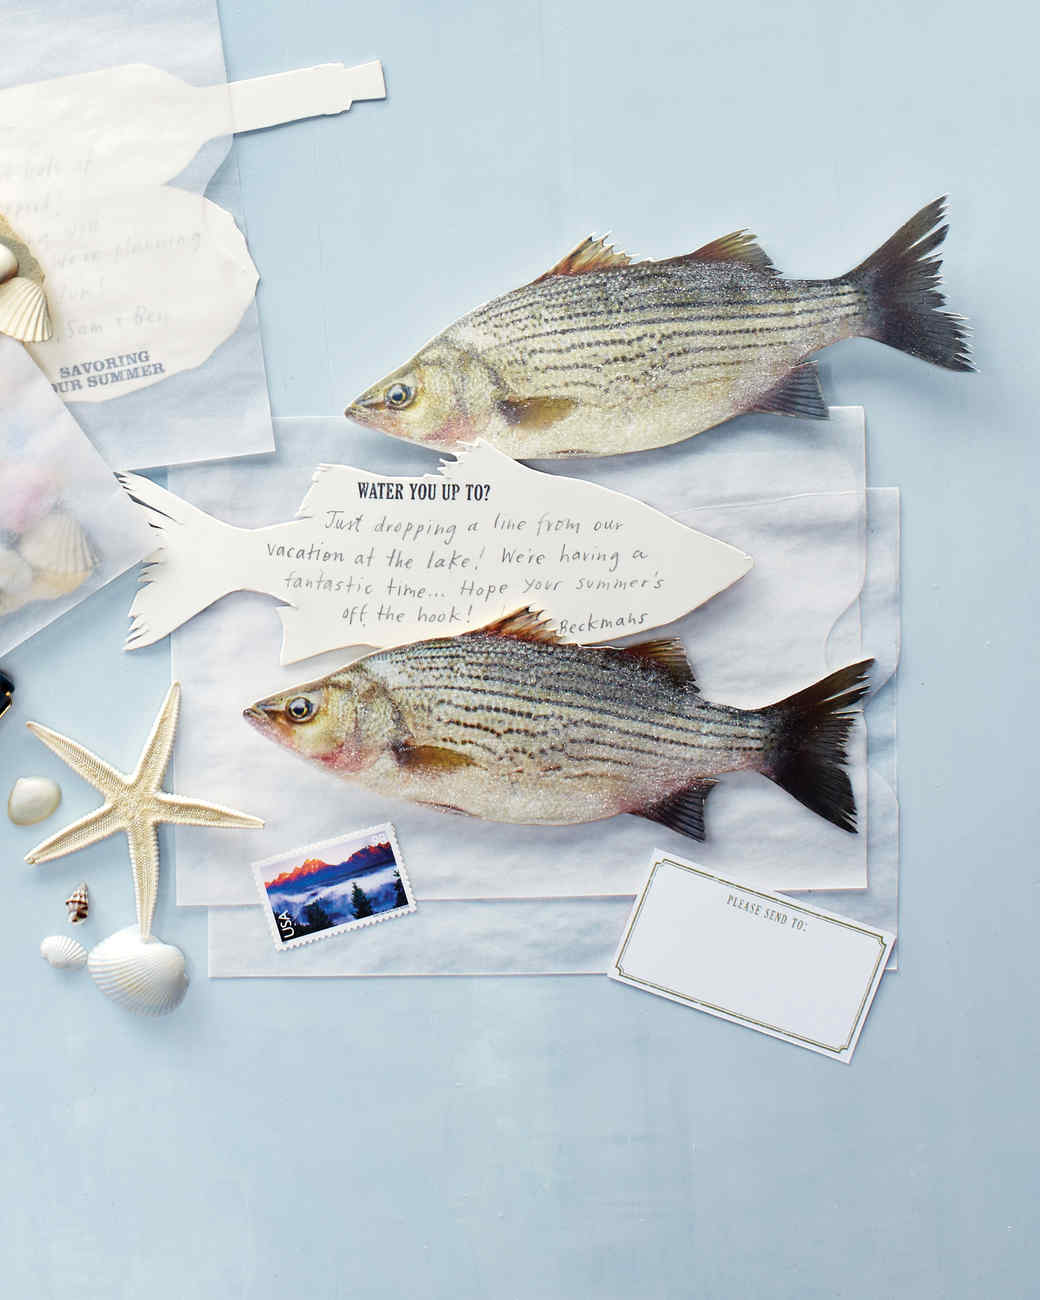 postcards-fish-0811mld107467.jpg